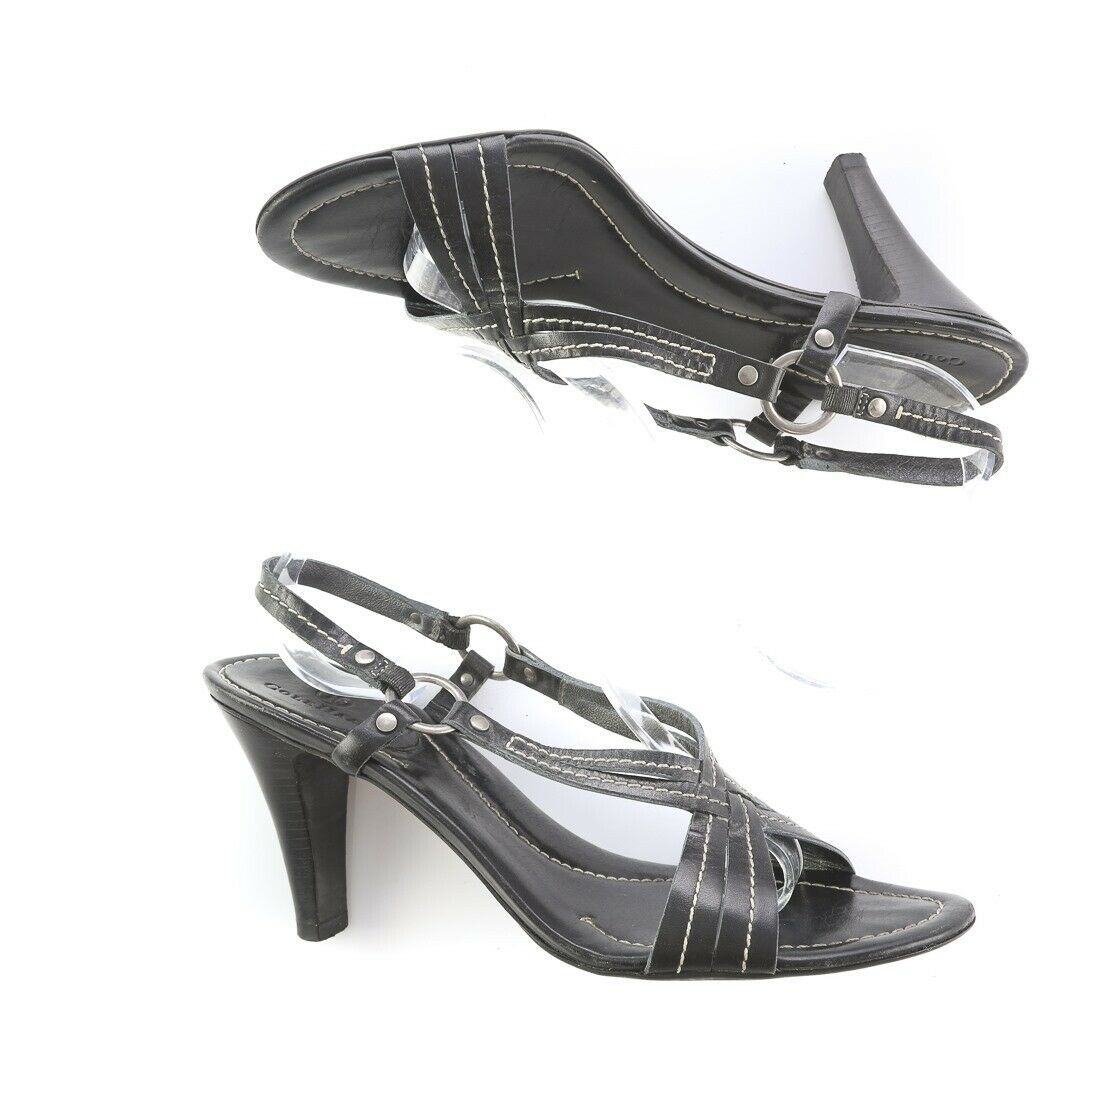 Cole Haan Black Stitched Leather Slingback Heeled Sandals Shoes Womens 9.5 B - $29.59